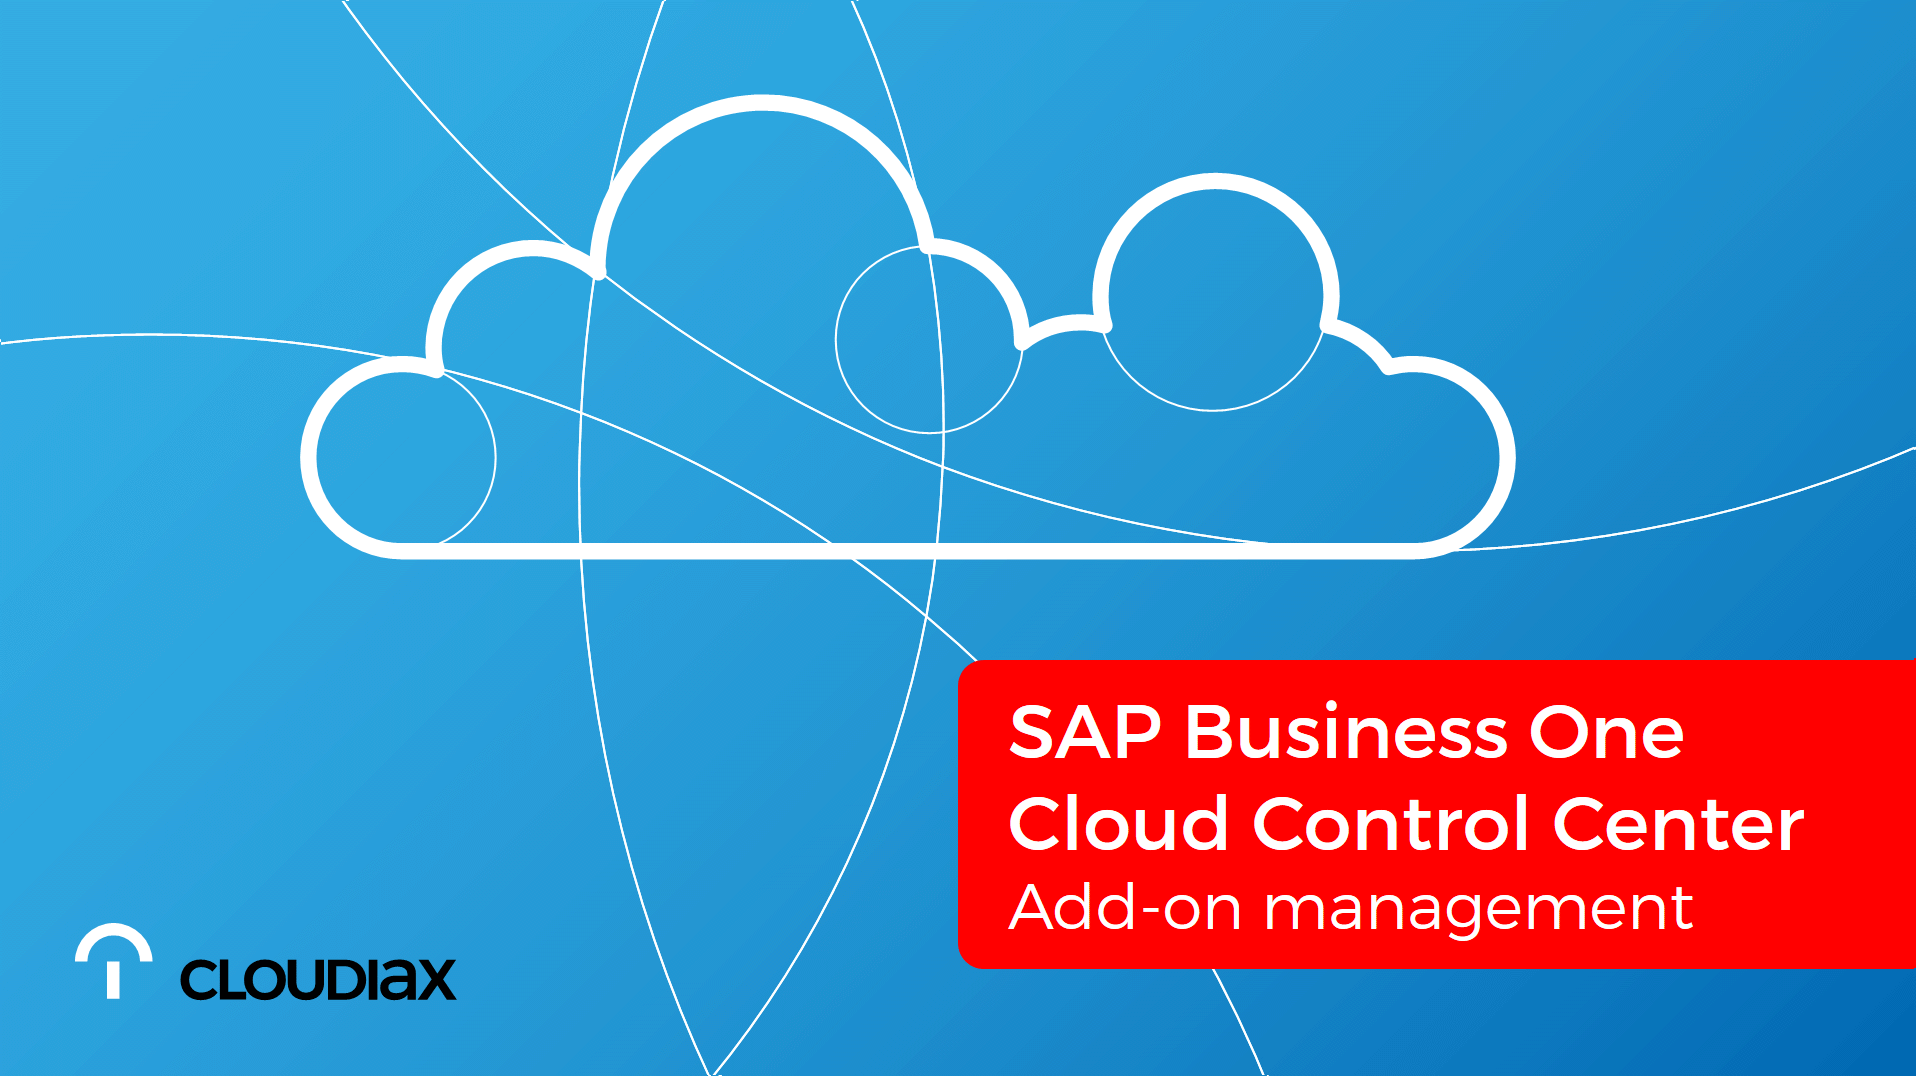 SAP Cloud Control Center - Add-on management